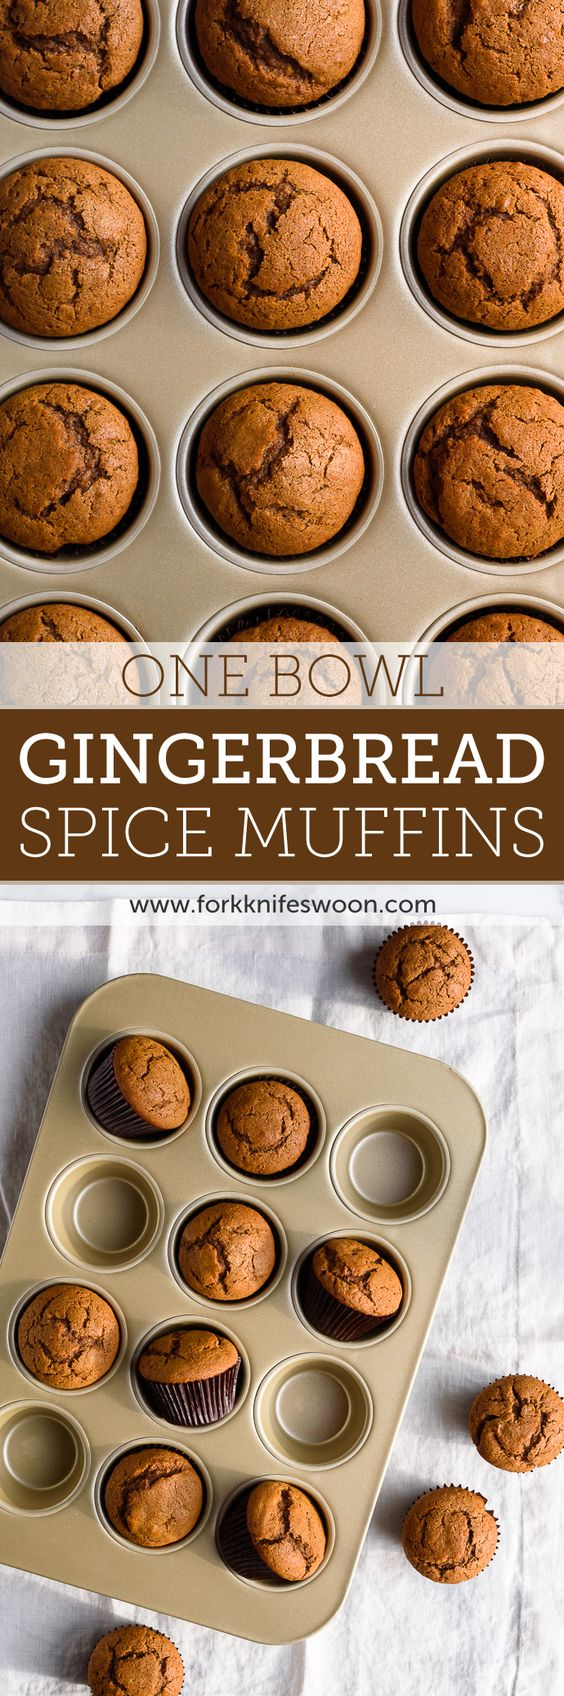 One Bowl Gingerbread Muffins   Fork Knife Swoon @forkknifeswoon